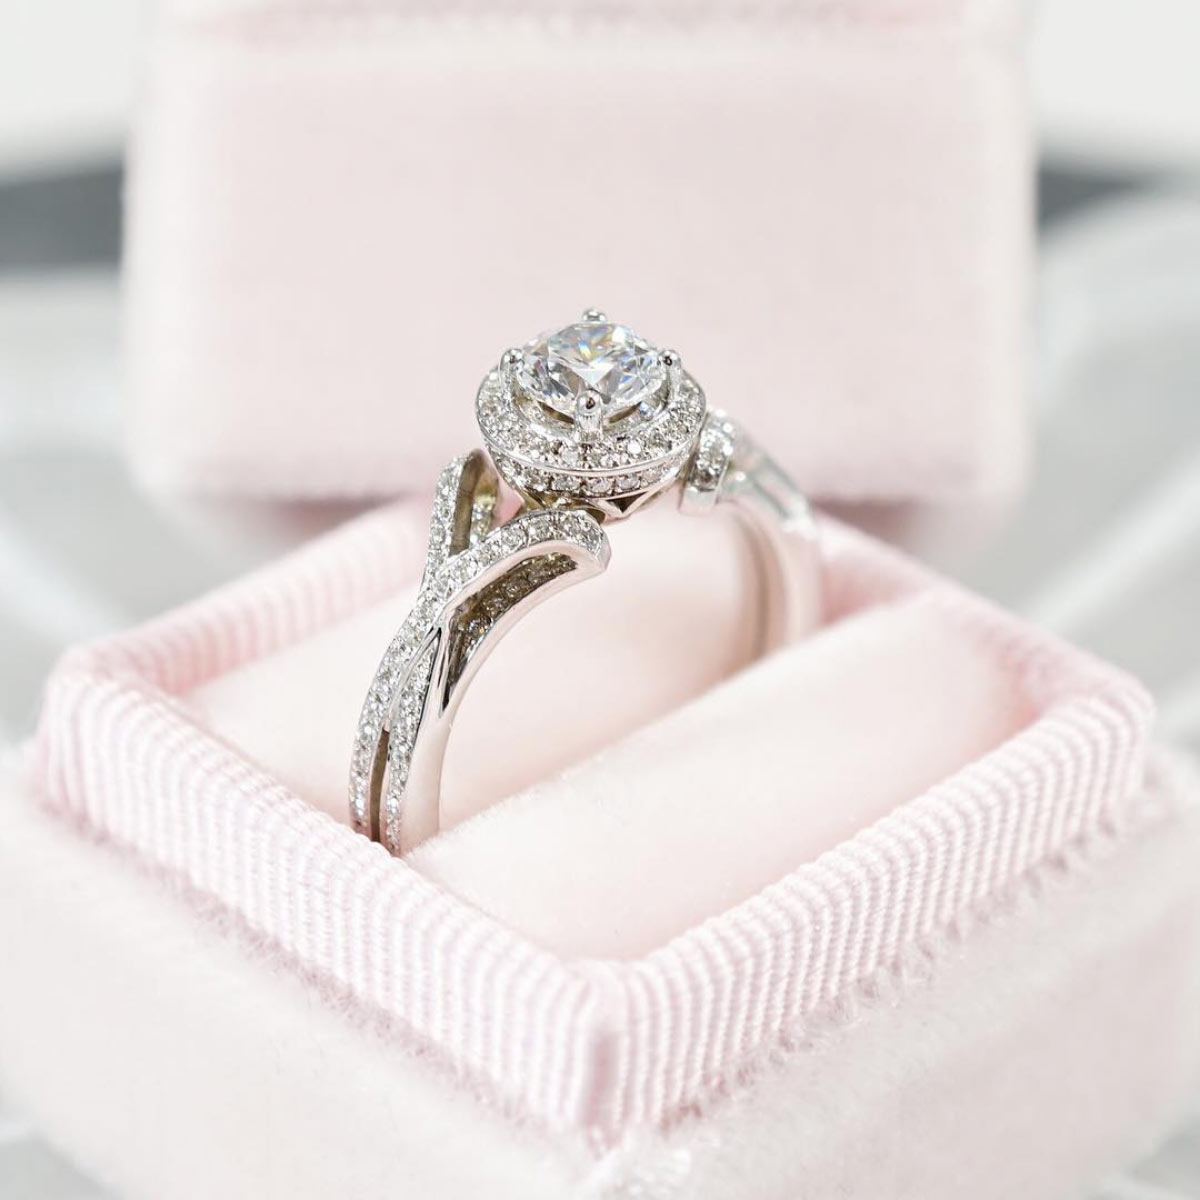 wedding women myshoplah rings different ring good style engagement for styles inspirational options